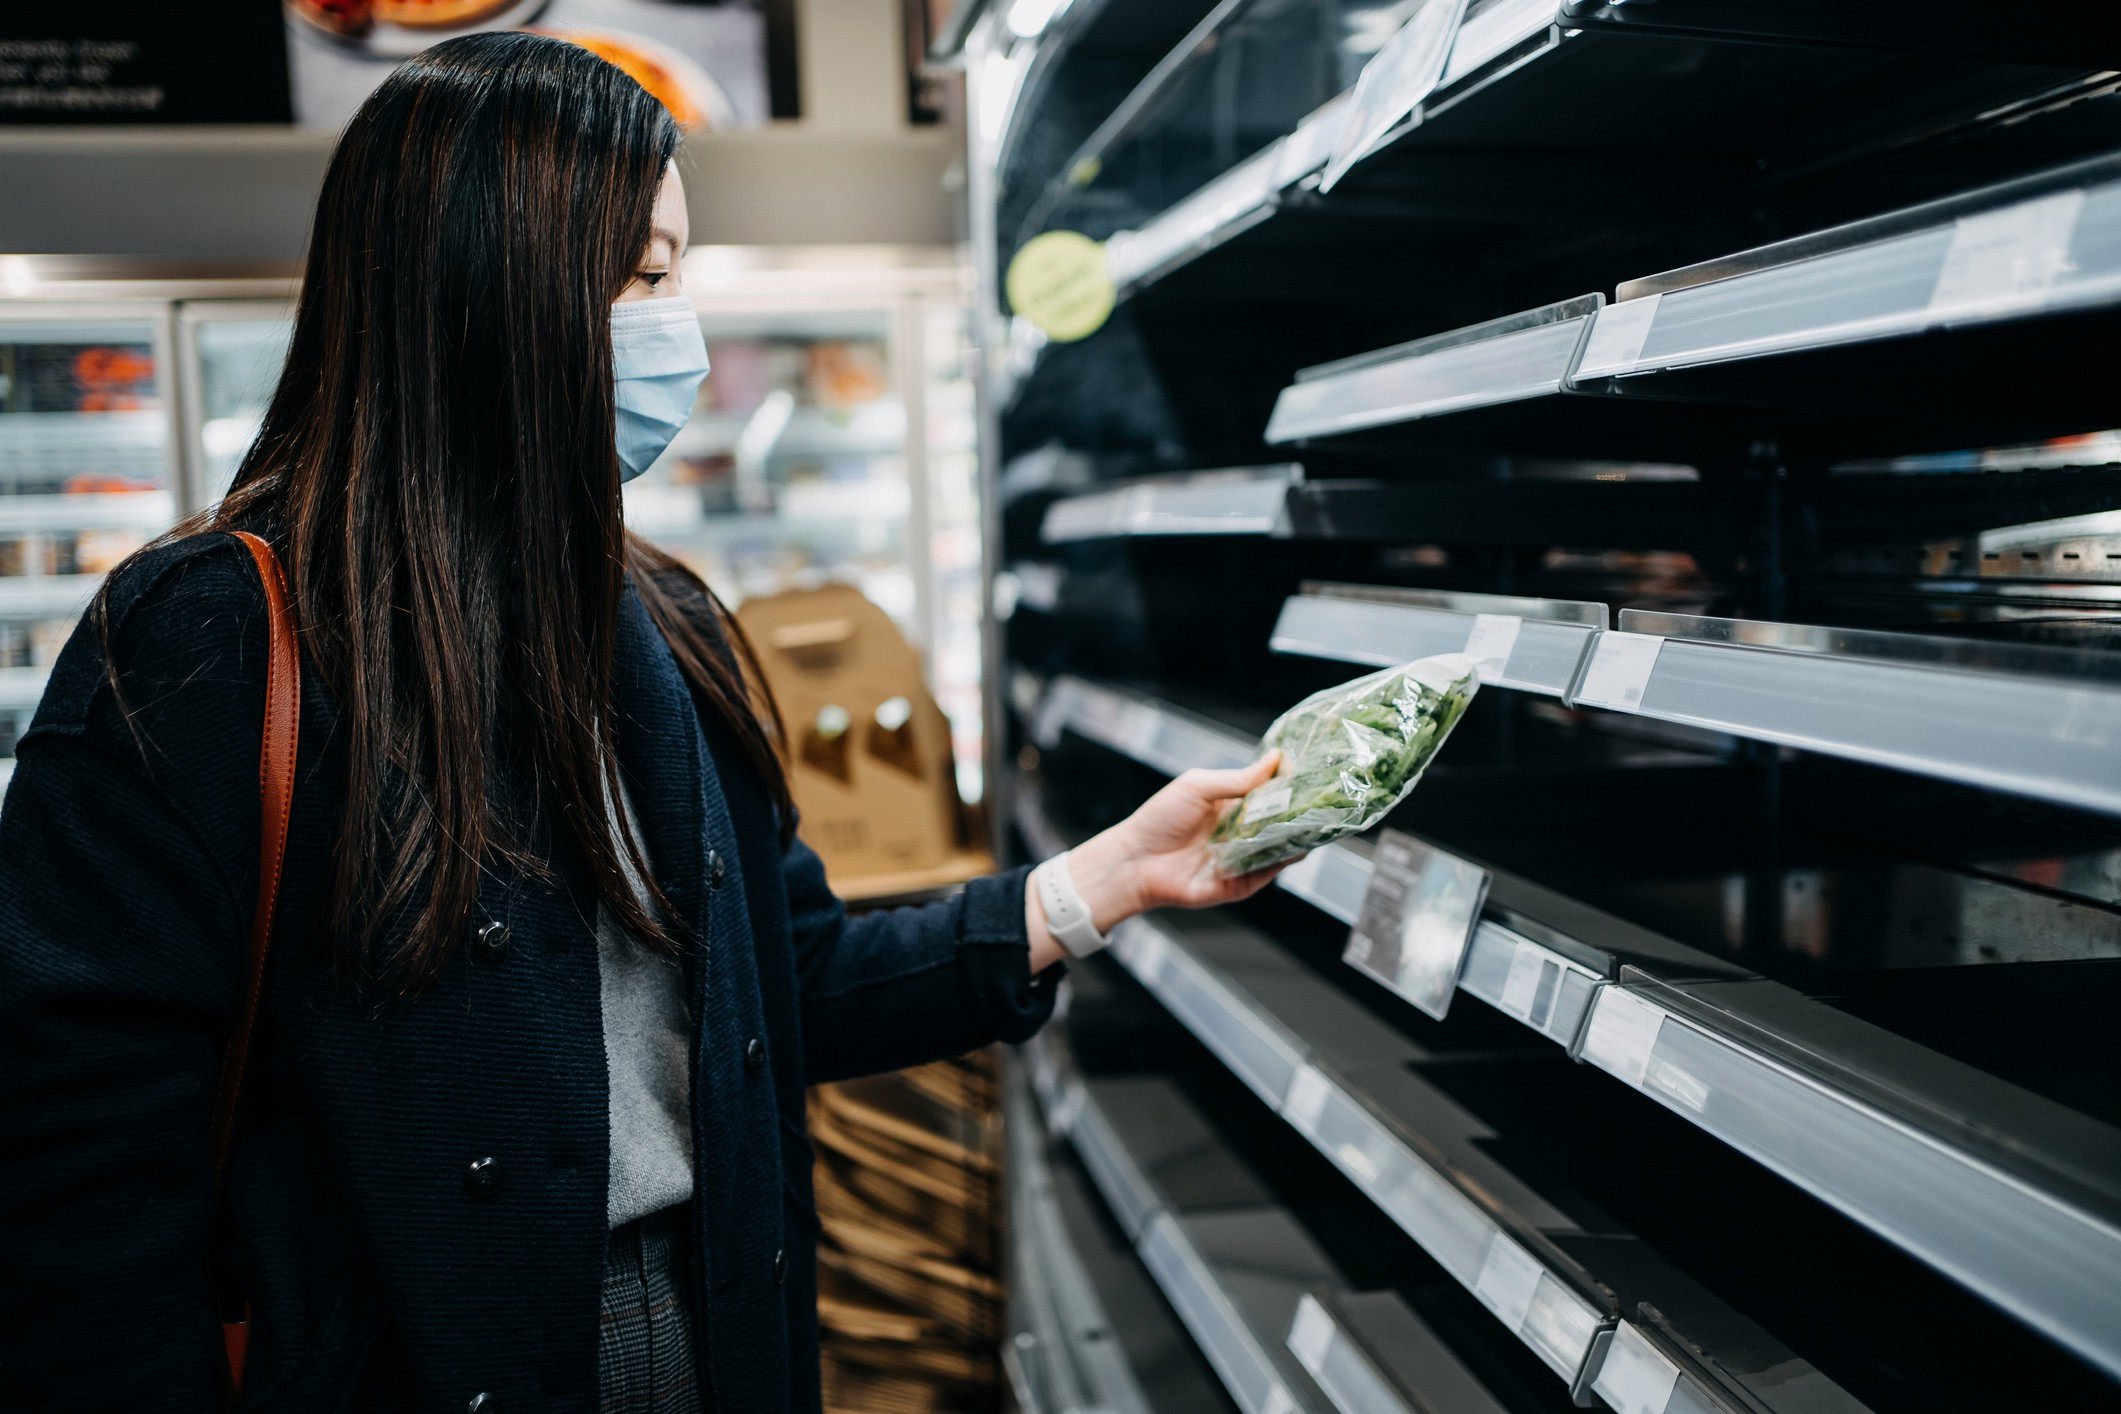 A woman with a mask picks up a packaged meal off of an empty aisle in the supermarket.